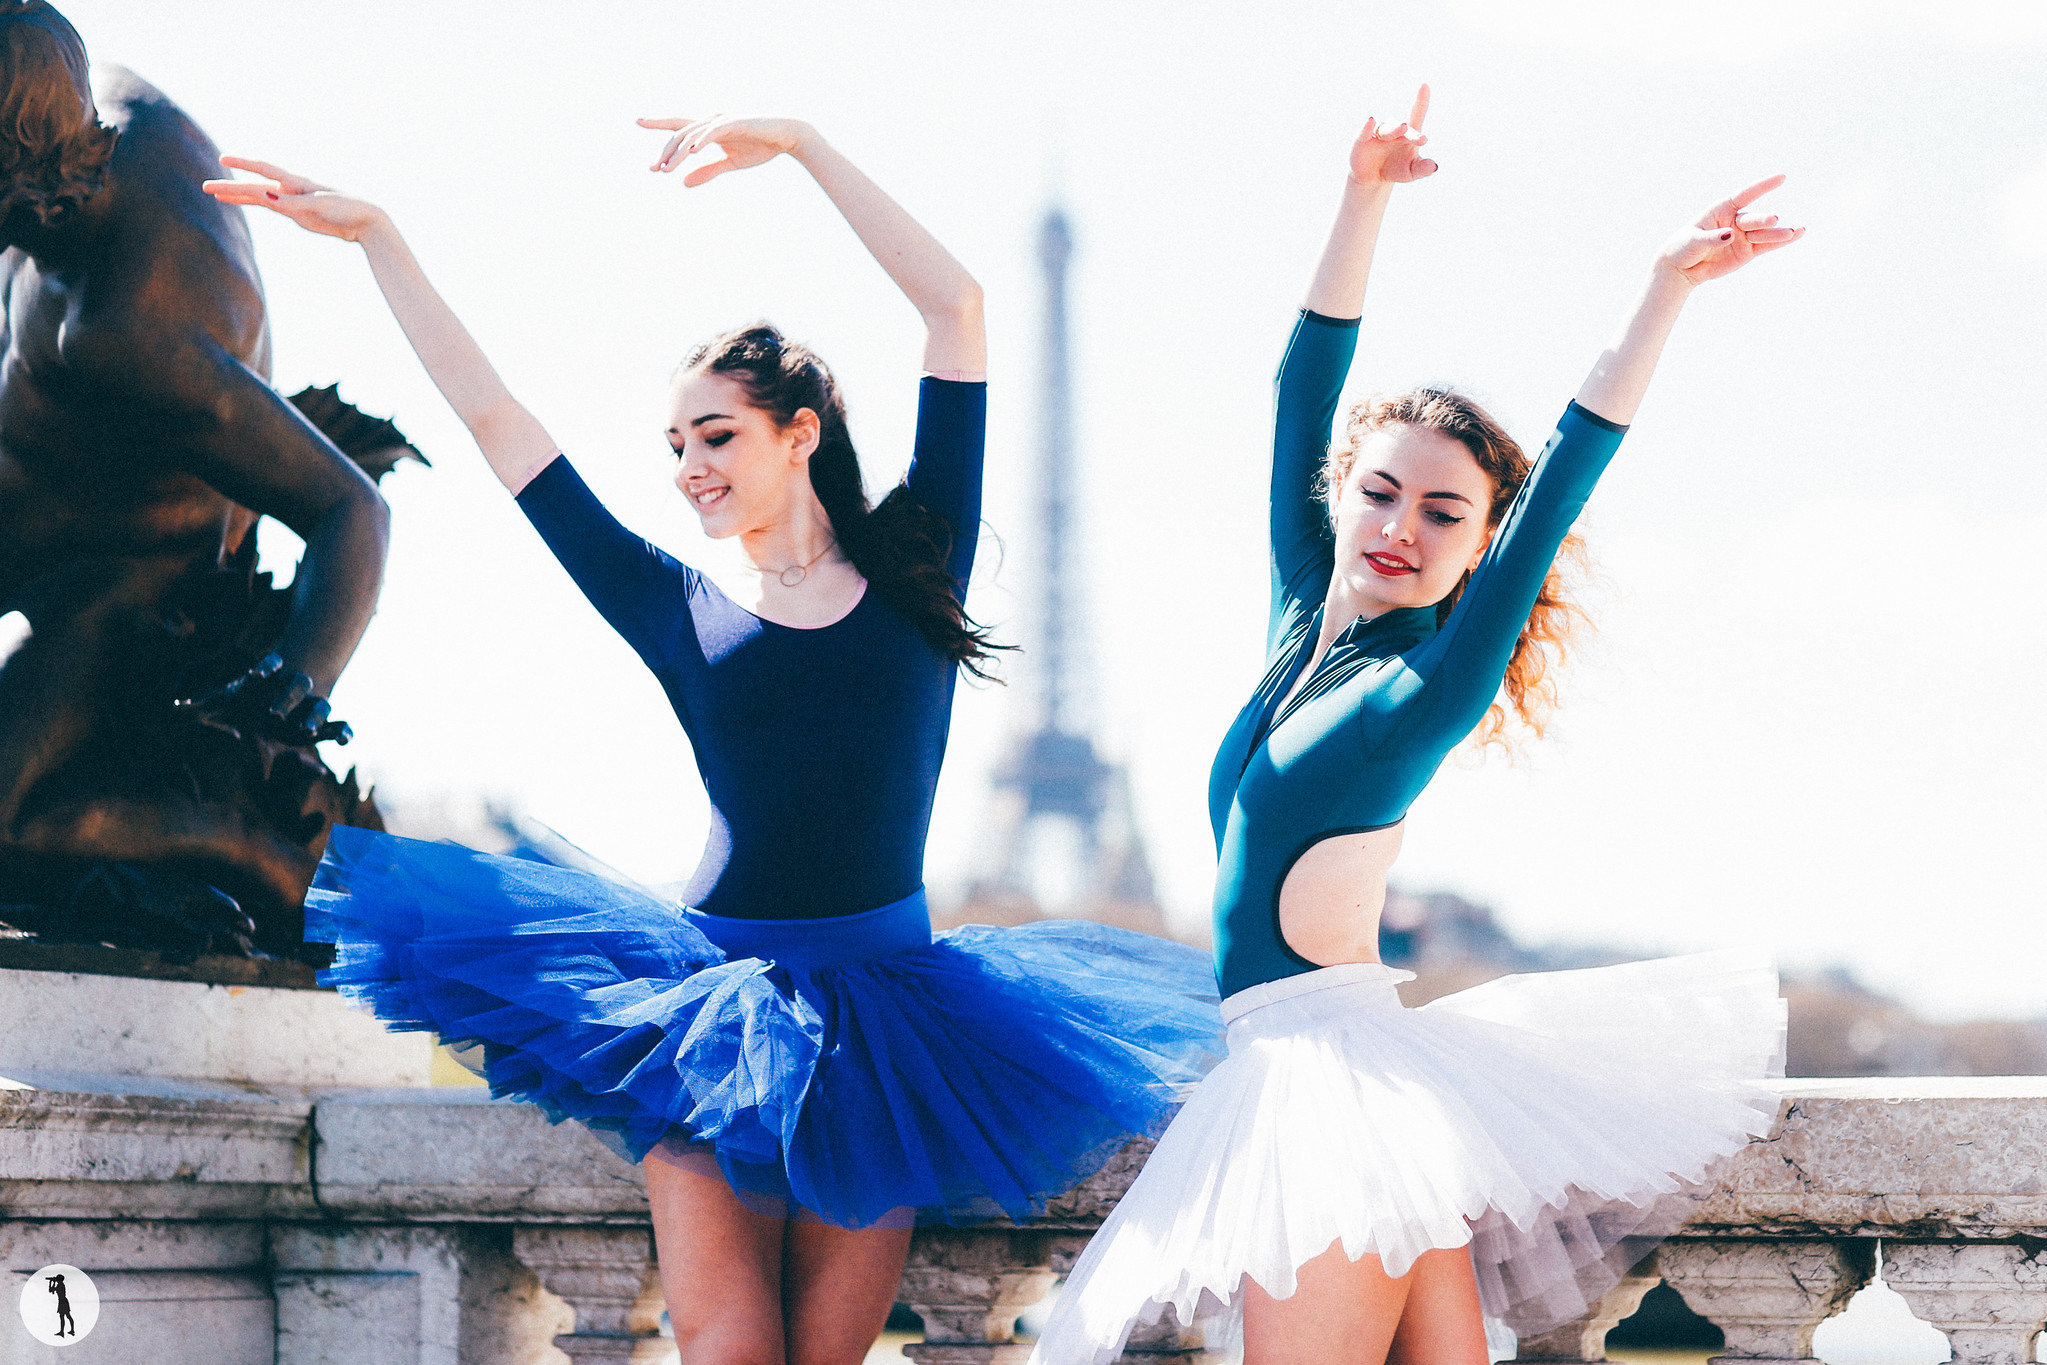 Ballet dancers from Opera Paris School. Photo shooting by Marie-Paola BERTRAND-HILLION